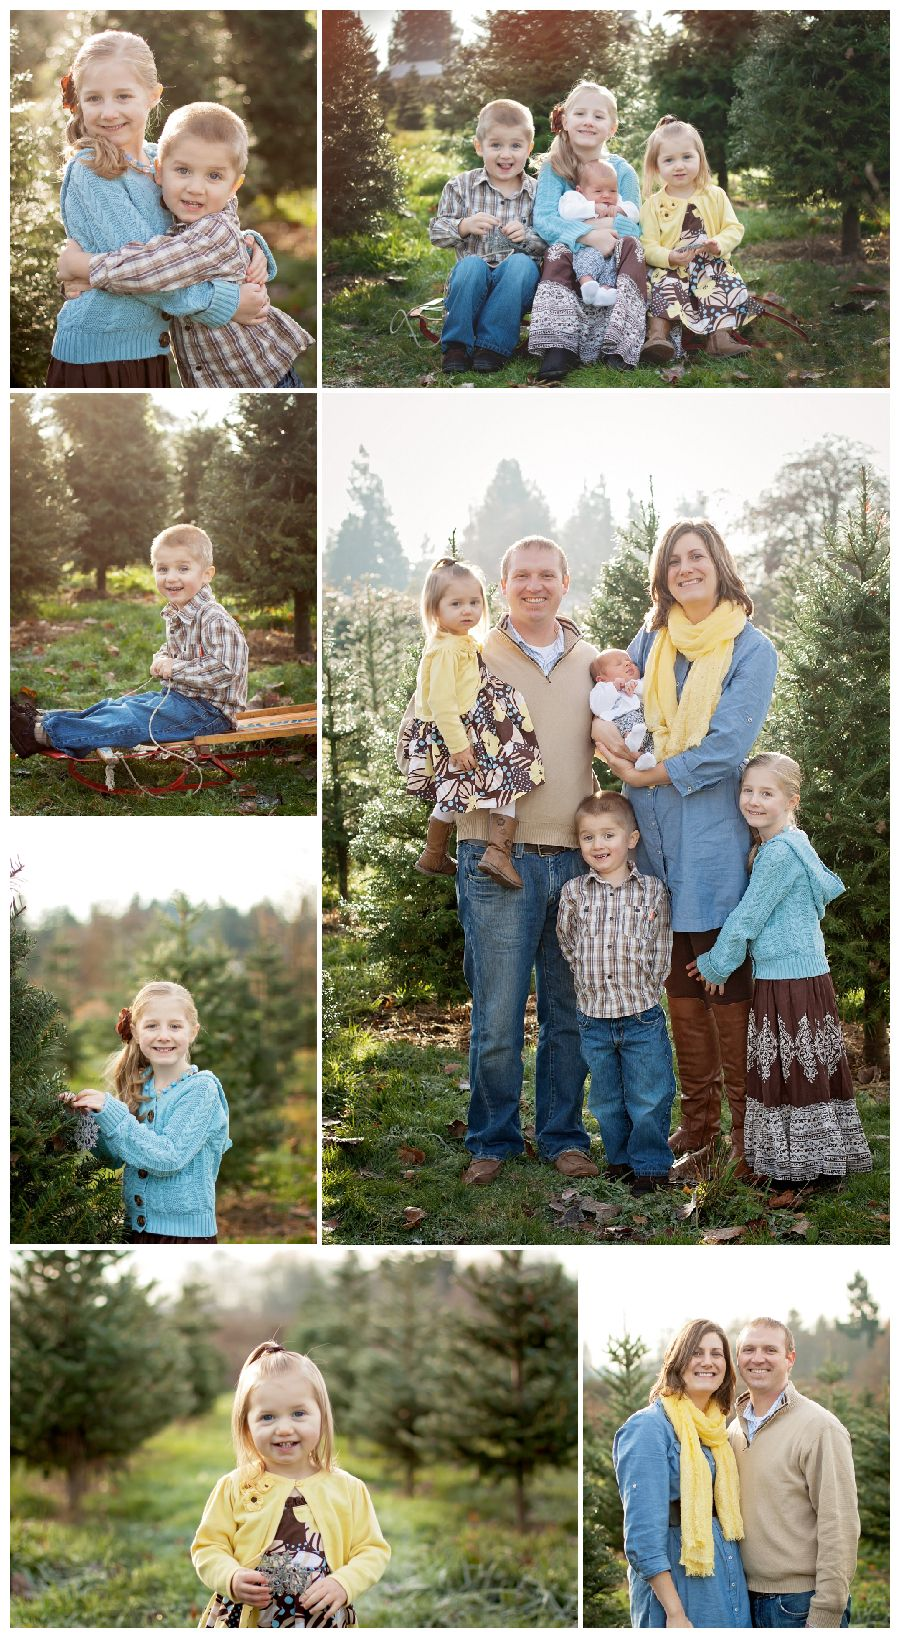 Outdoor Christmas Tree Farm Family Pictures Outdoor Christmas Mini Sessions Outdoor Christmas Photography Christmas Tree Pictures Family Holiday Pictures